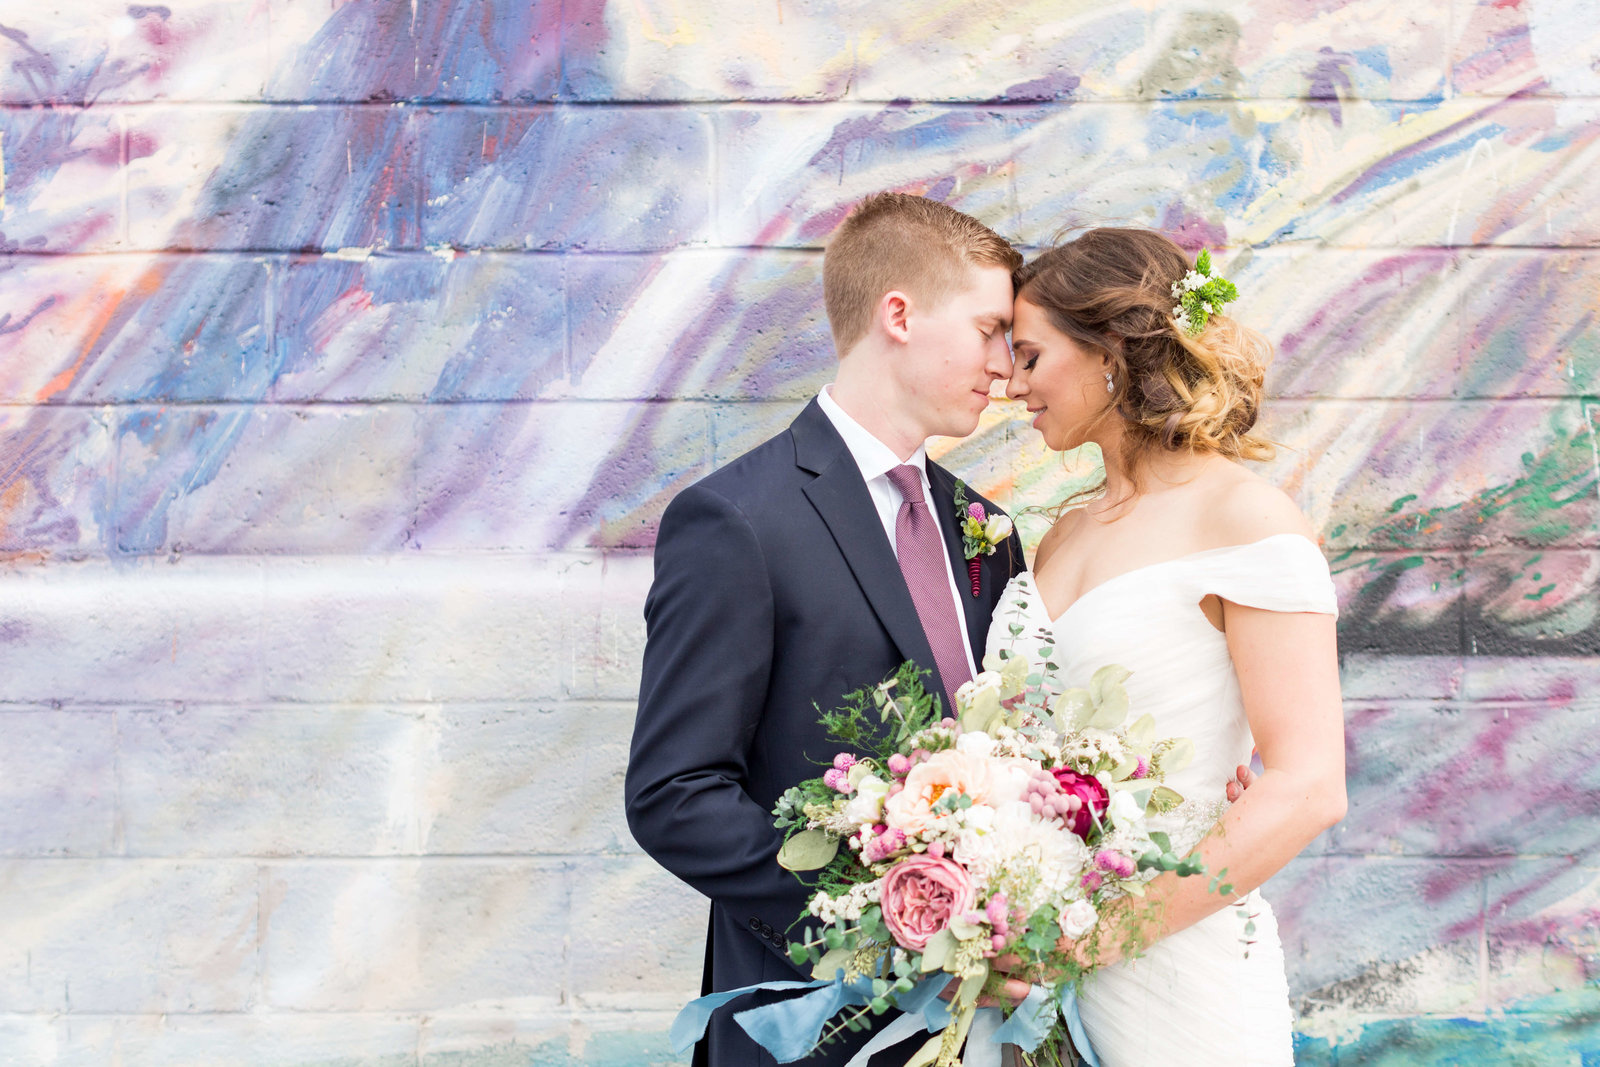 Belding-Vezendy-Couples-Portraits_SC-Wedding-Photographer_2018-65